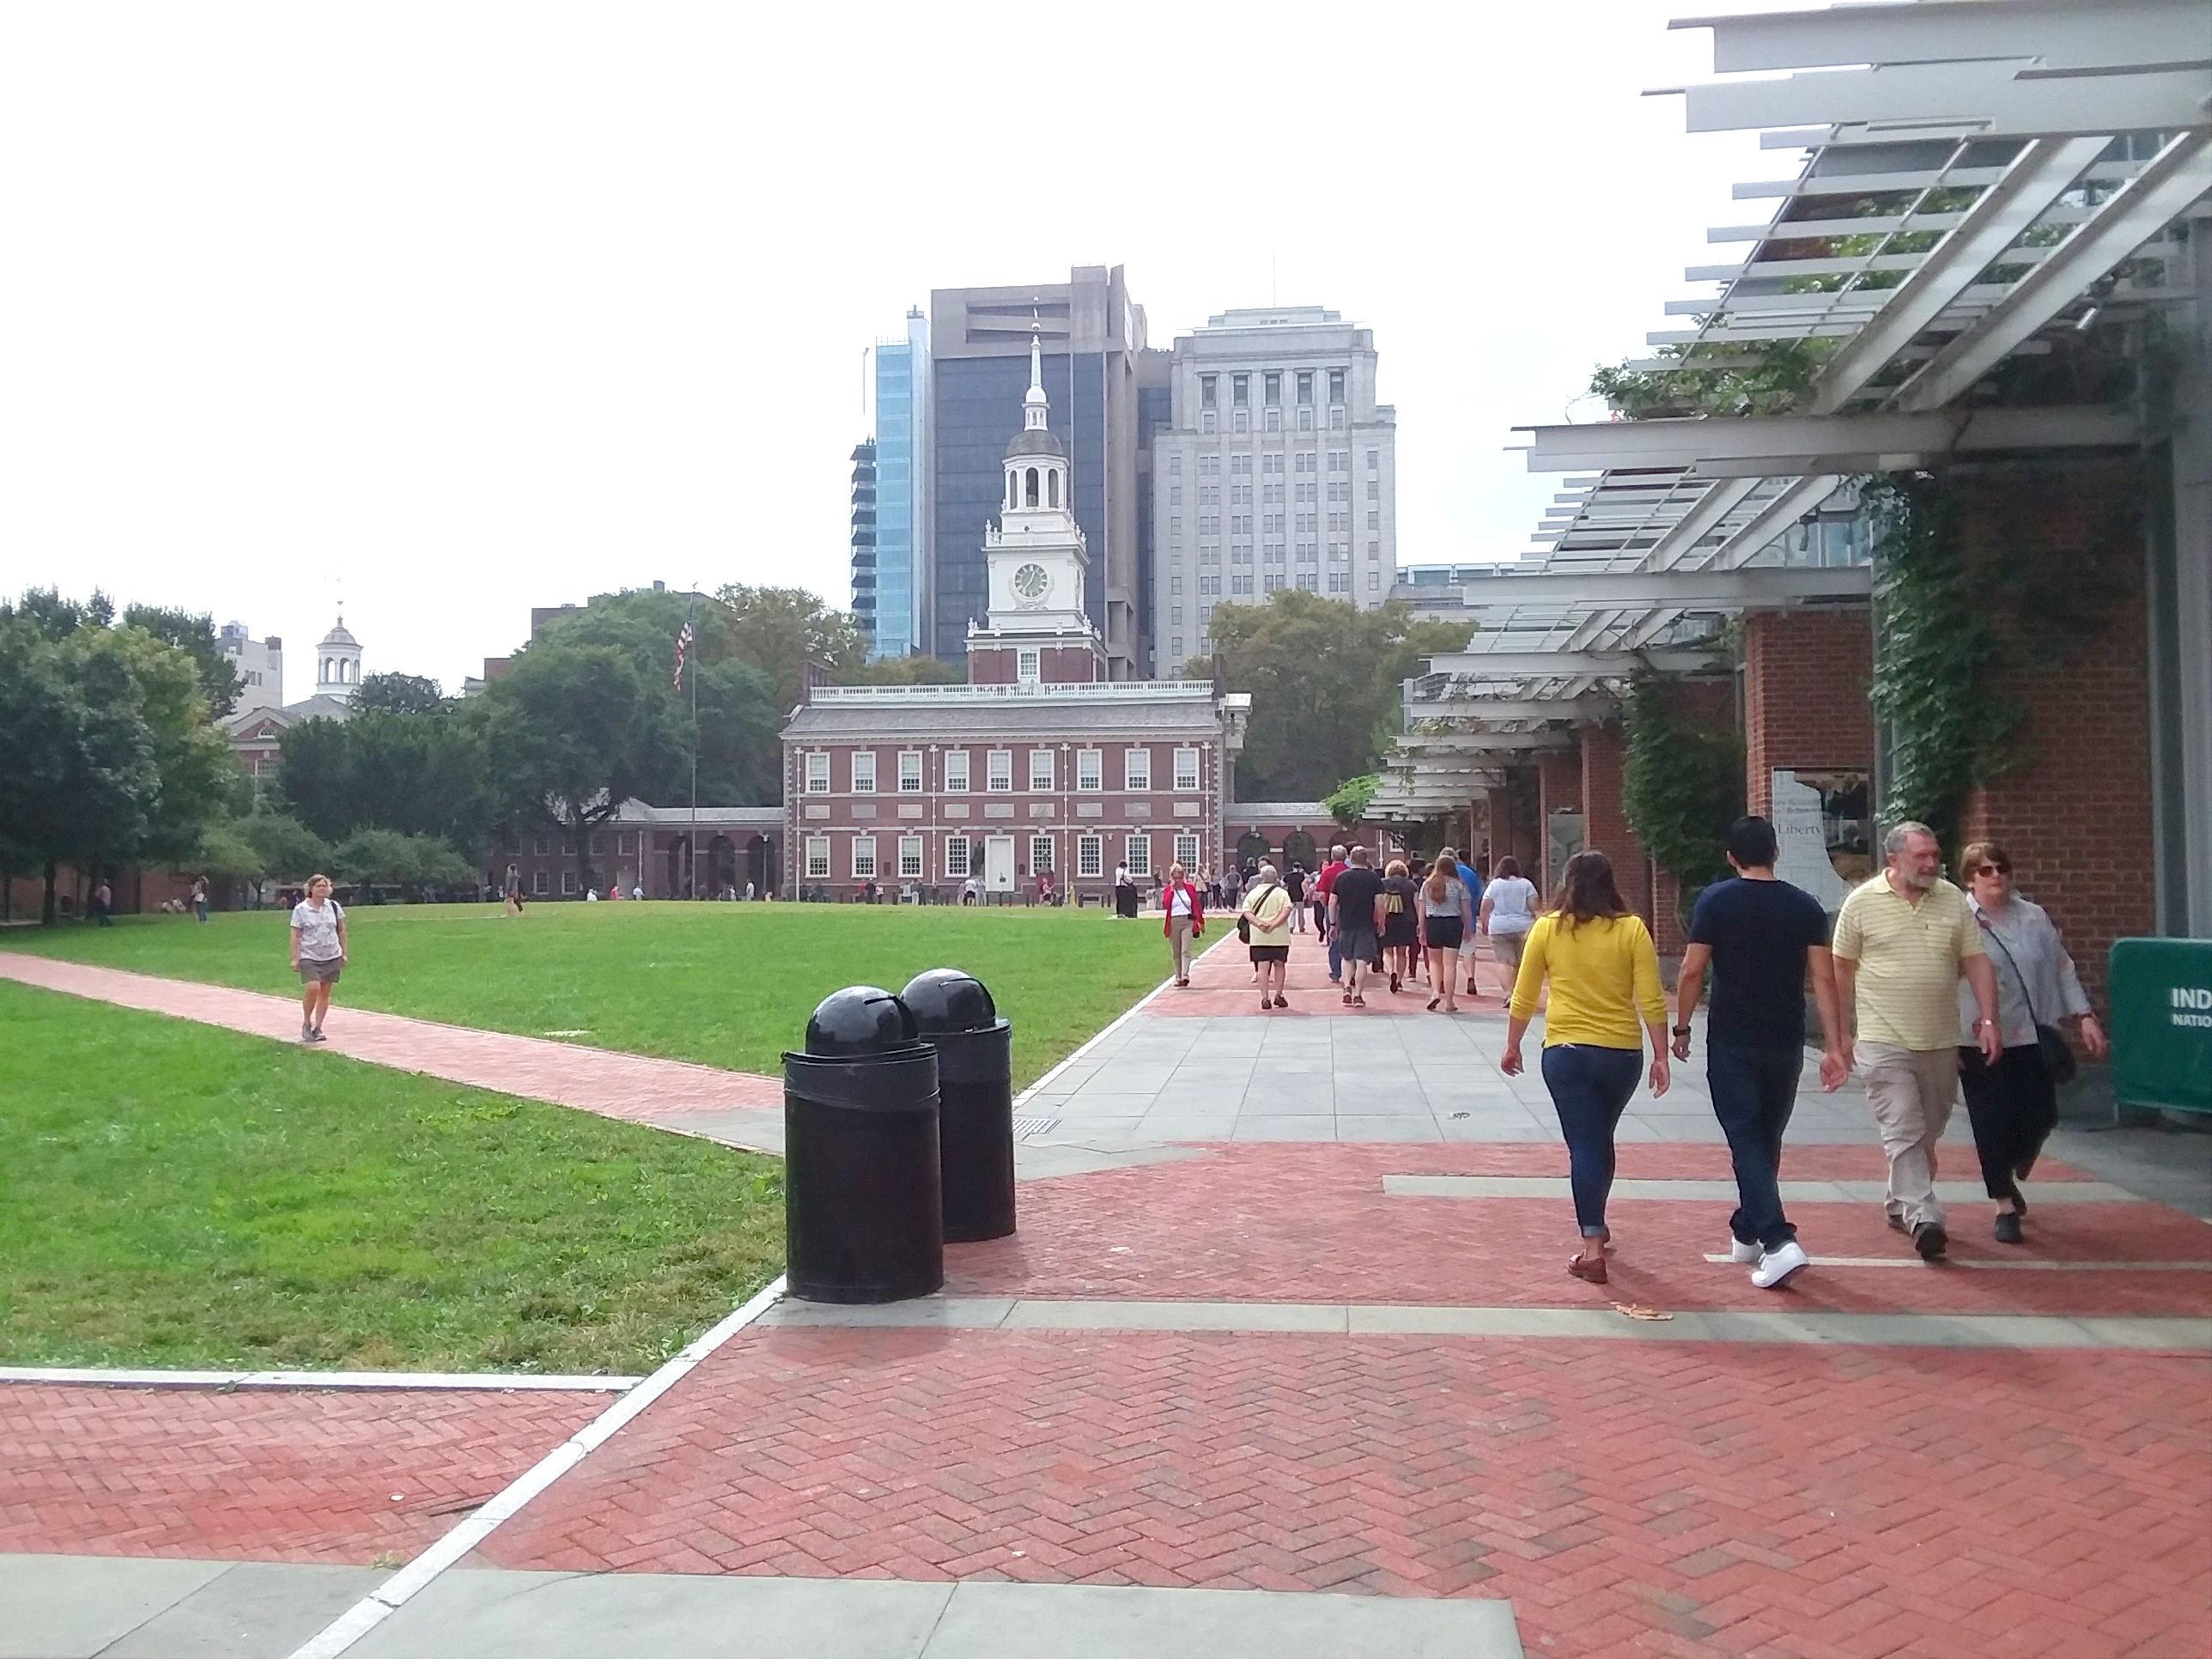 philly_independence_hall.jpg